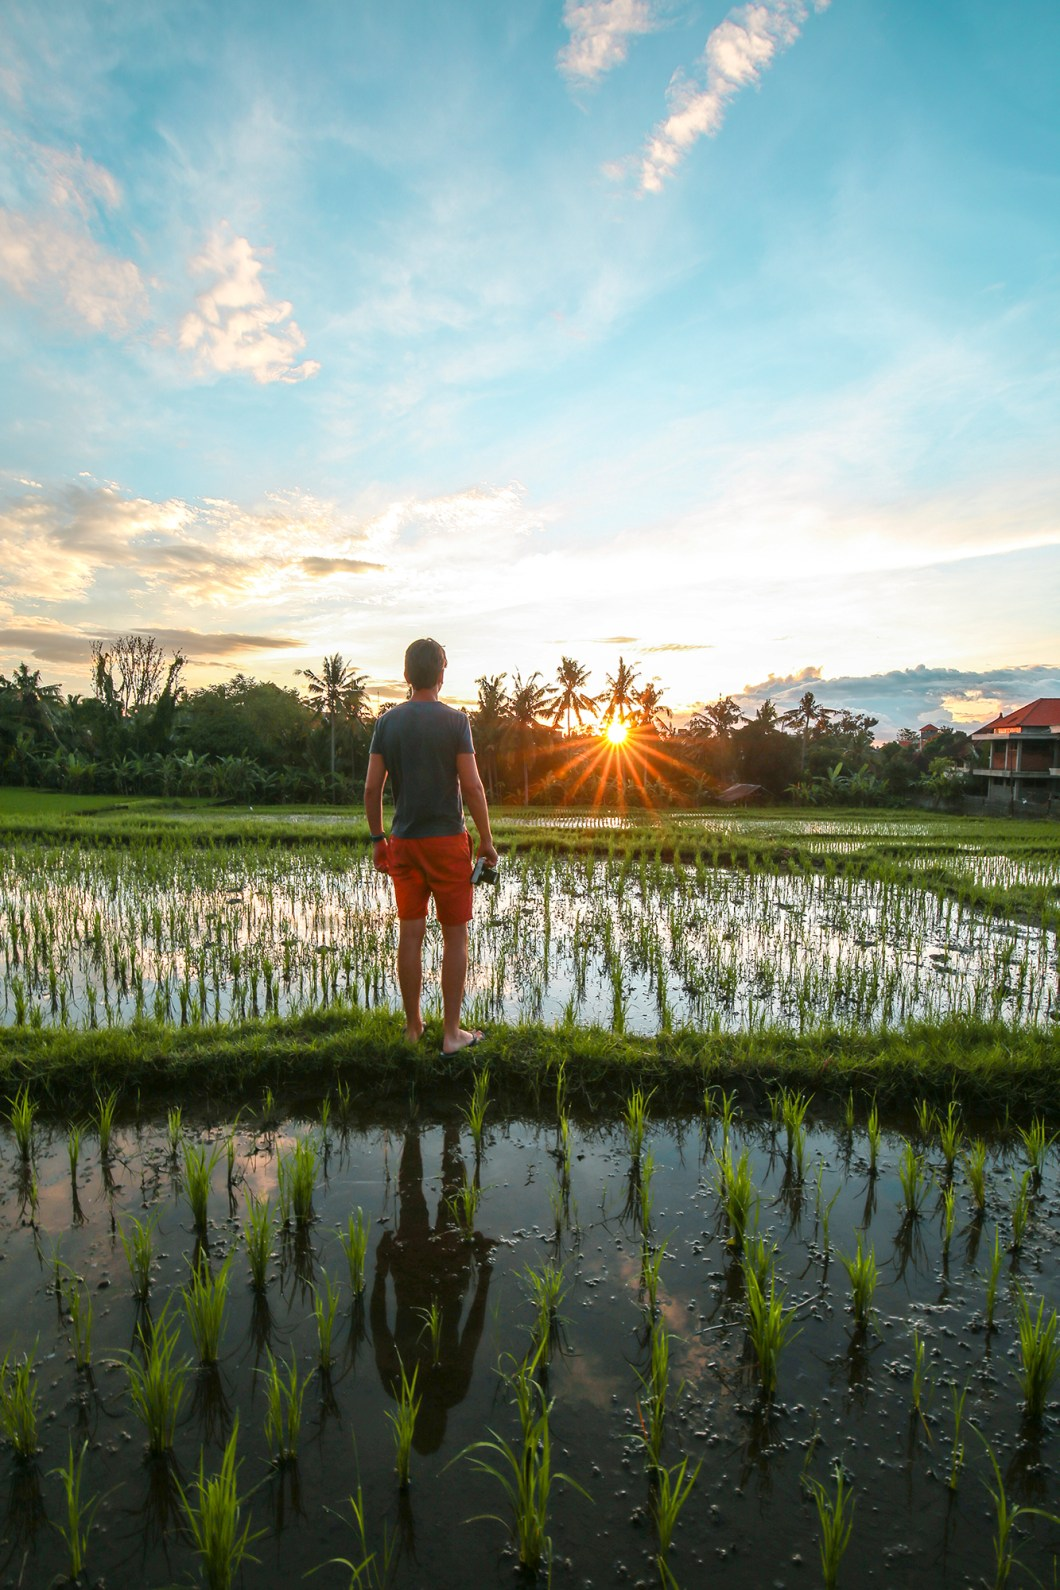 Bali Indonesia | How Far From Home